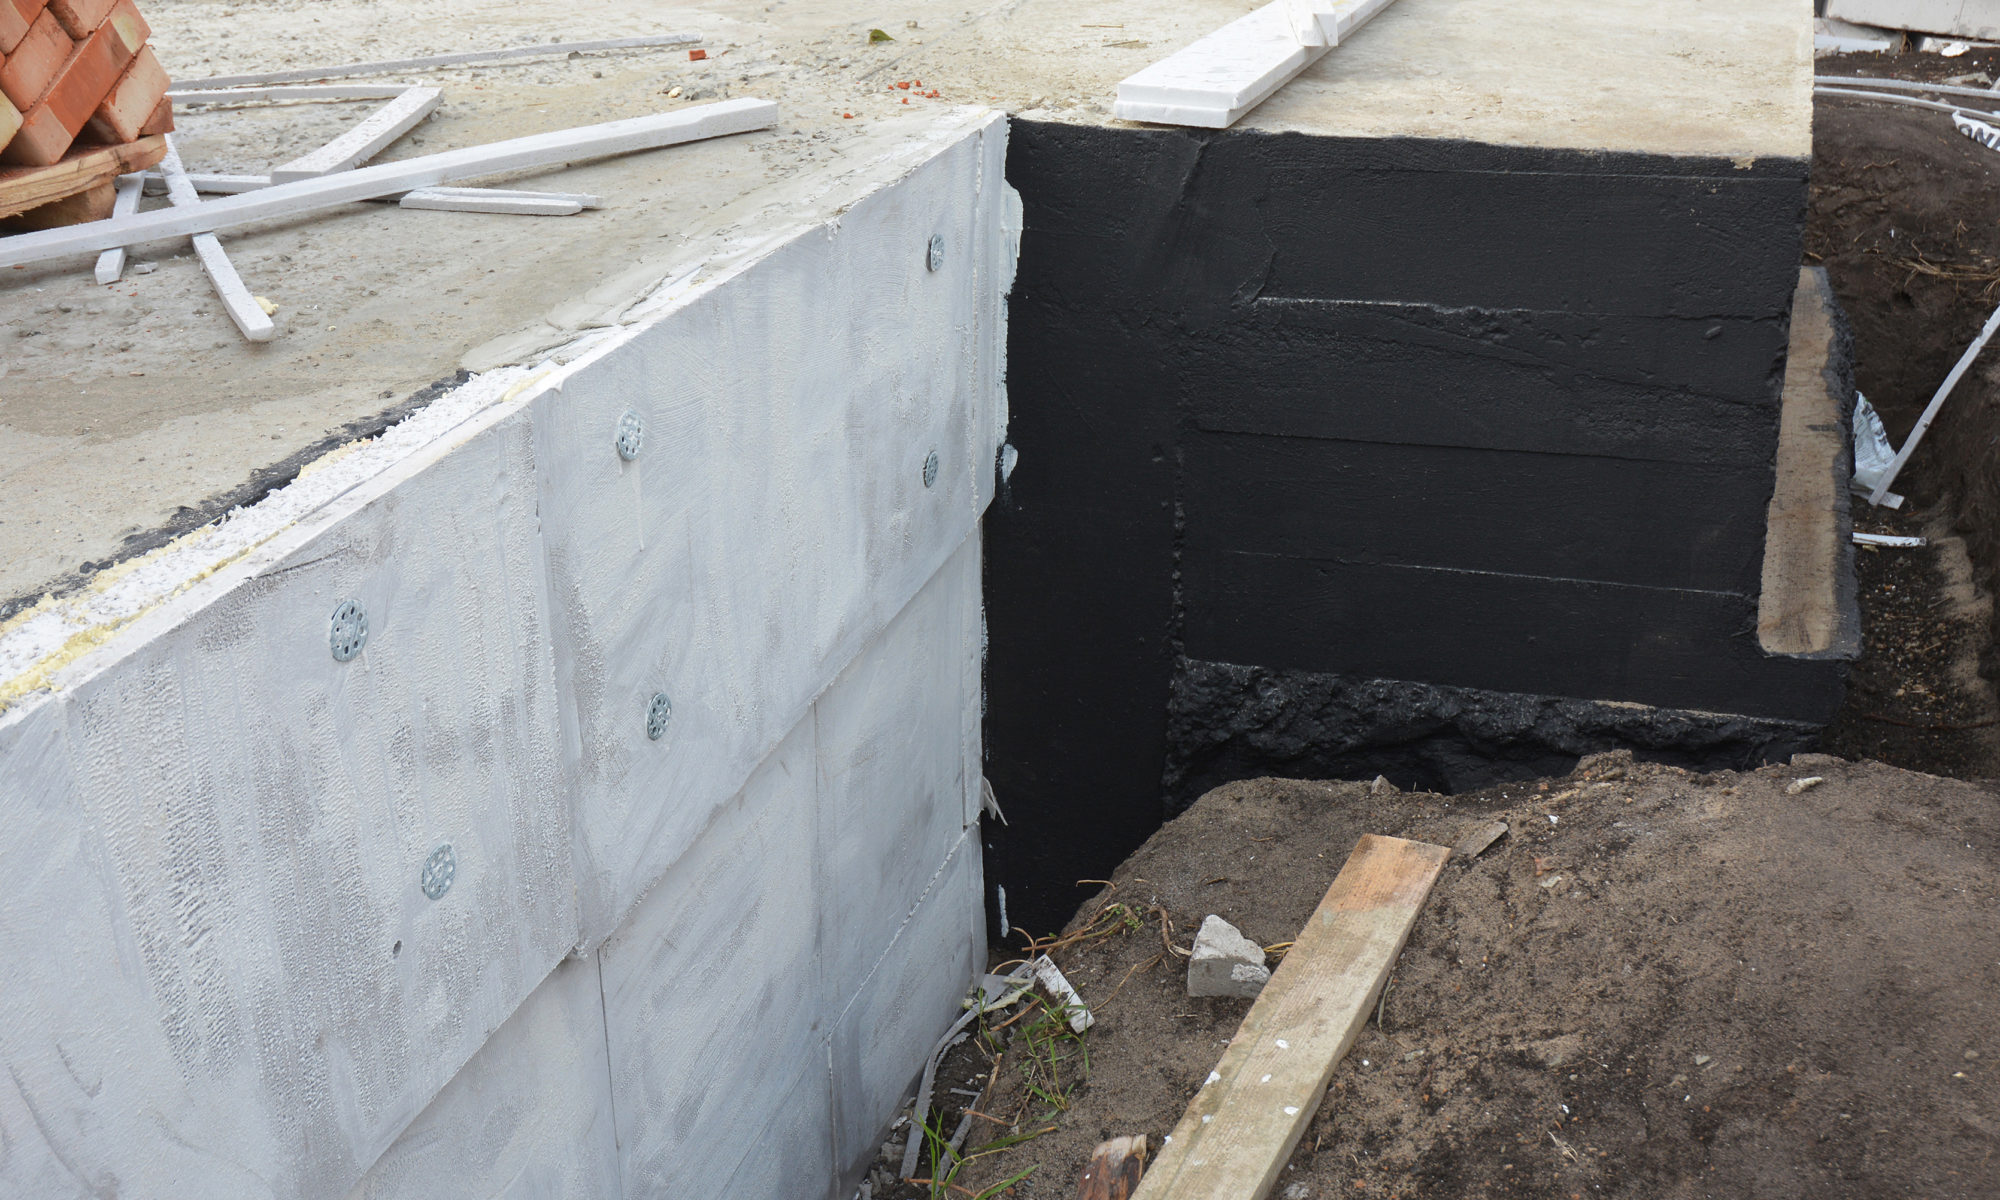 damp proofing vs. exterior waterproofing